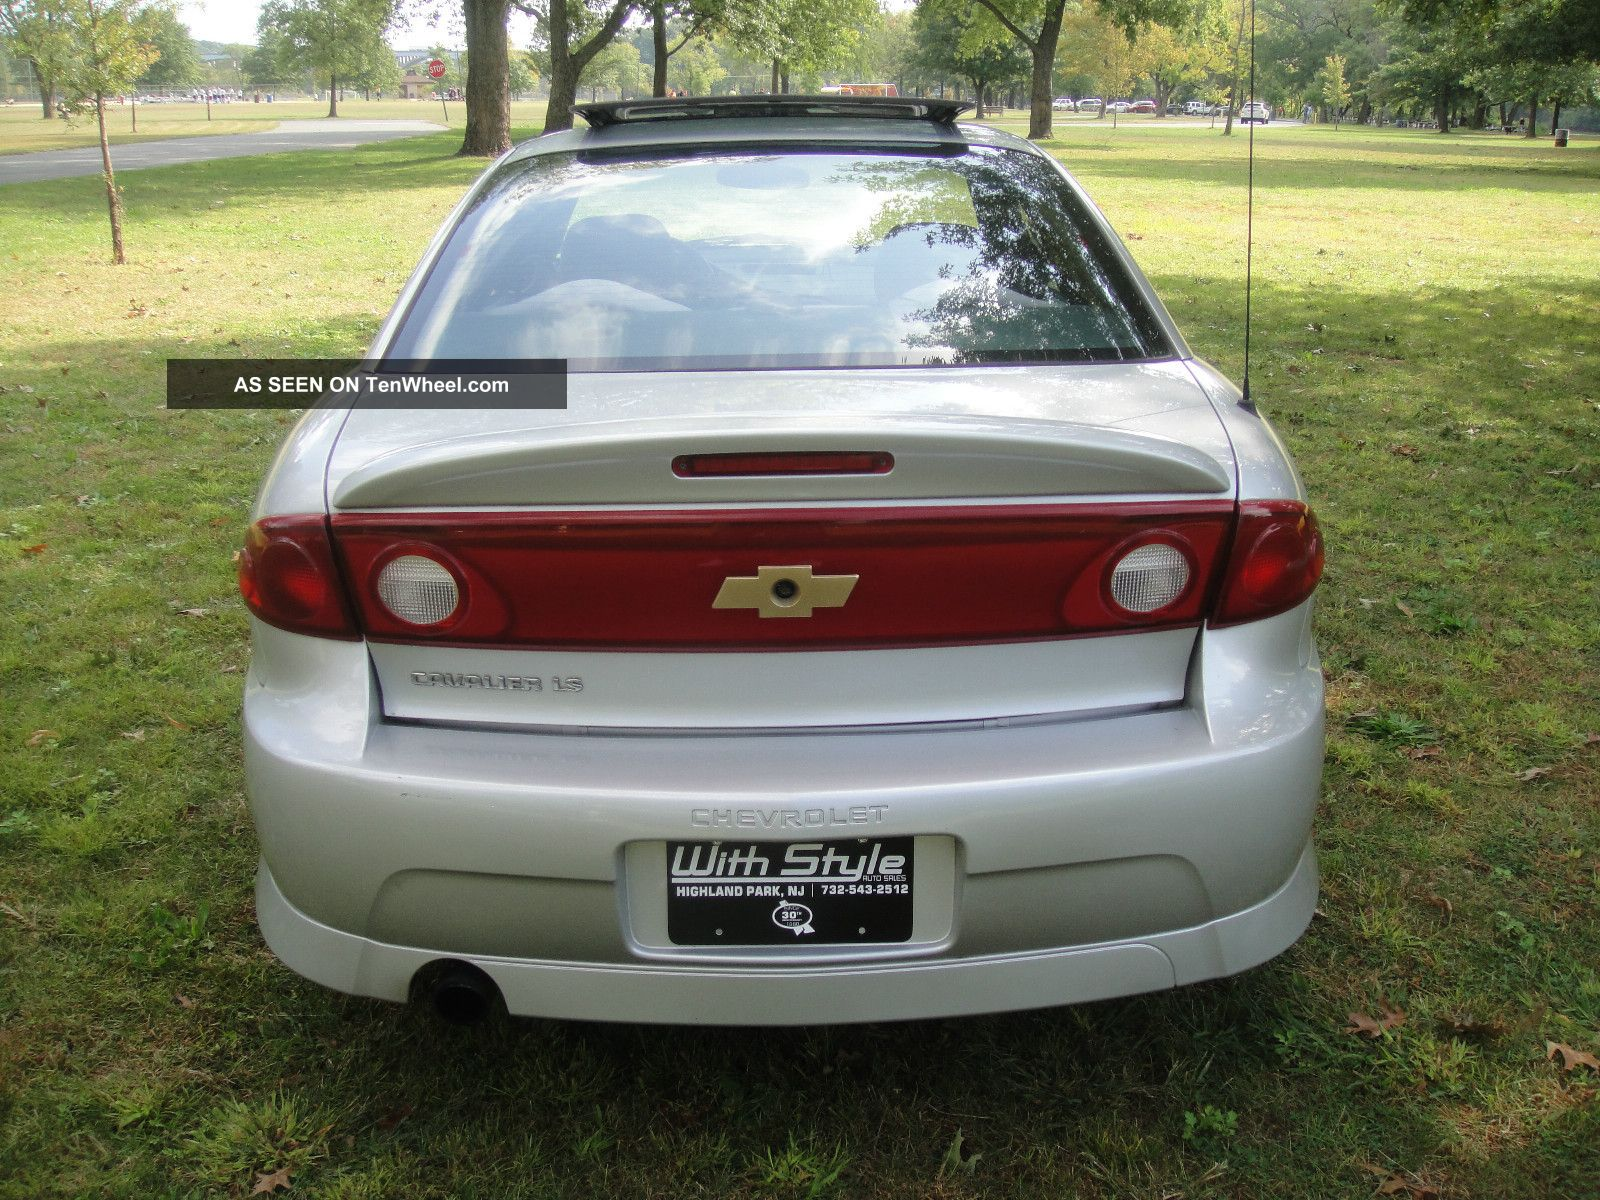 2005 chevrolet cavalier ls sport coupe fully loaded cavalier photo 6. Cars Review. Best American Auto & Cars Review